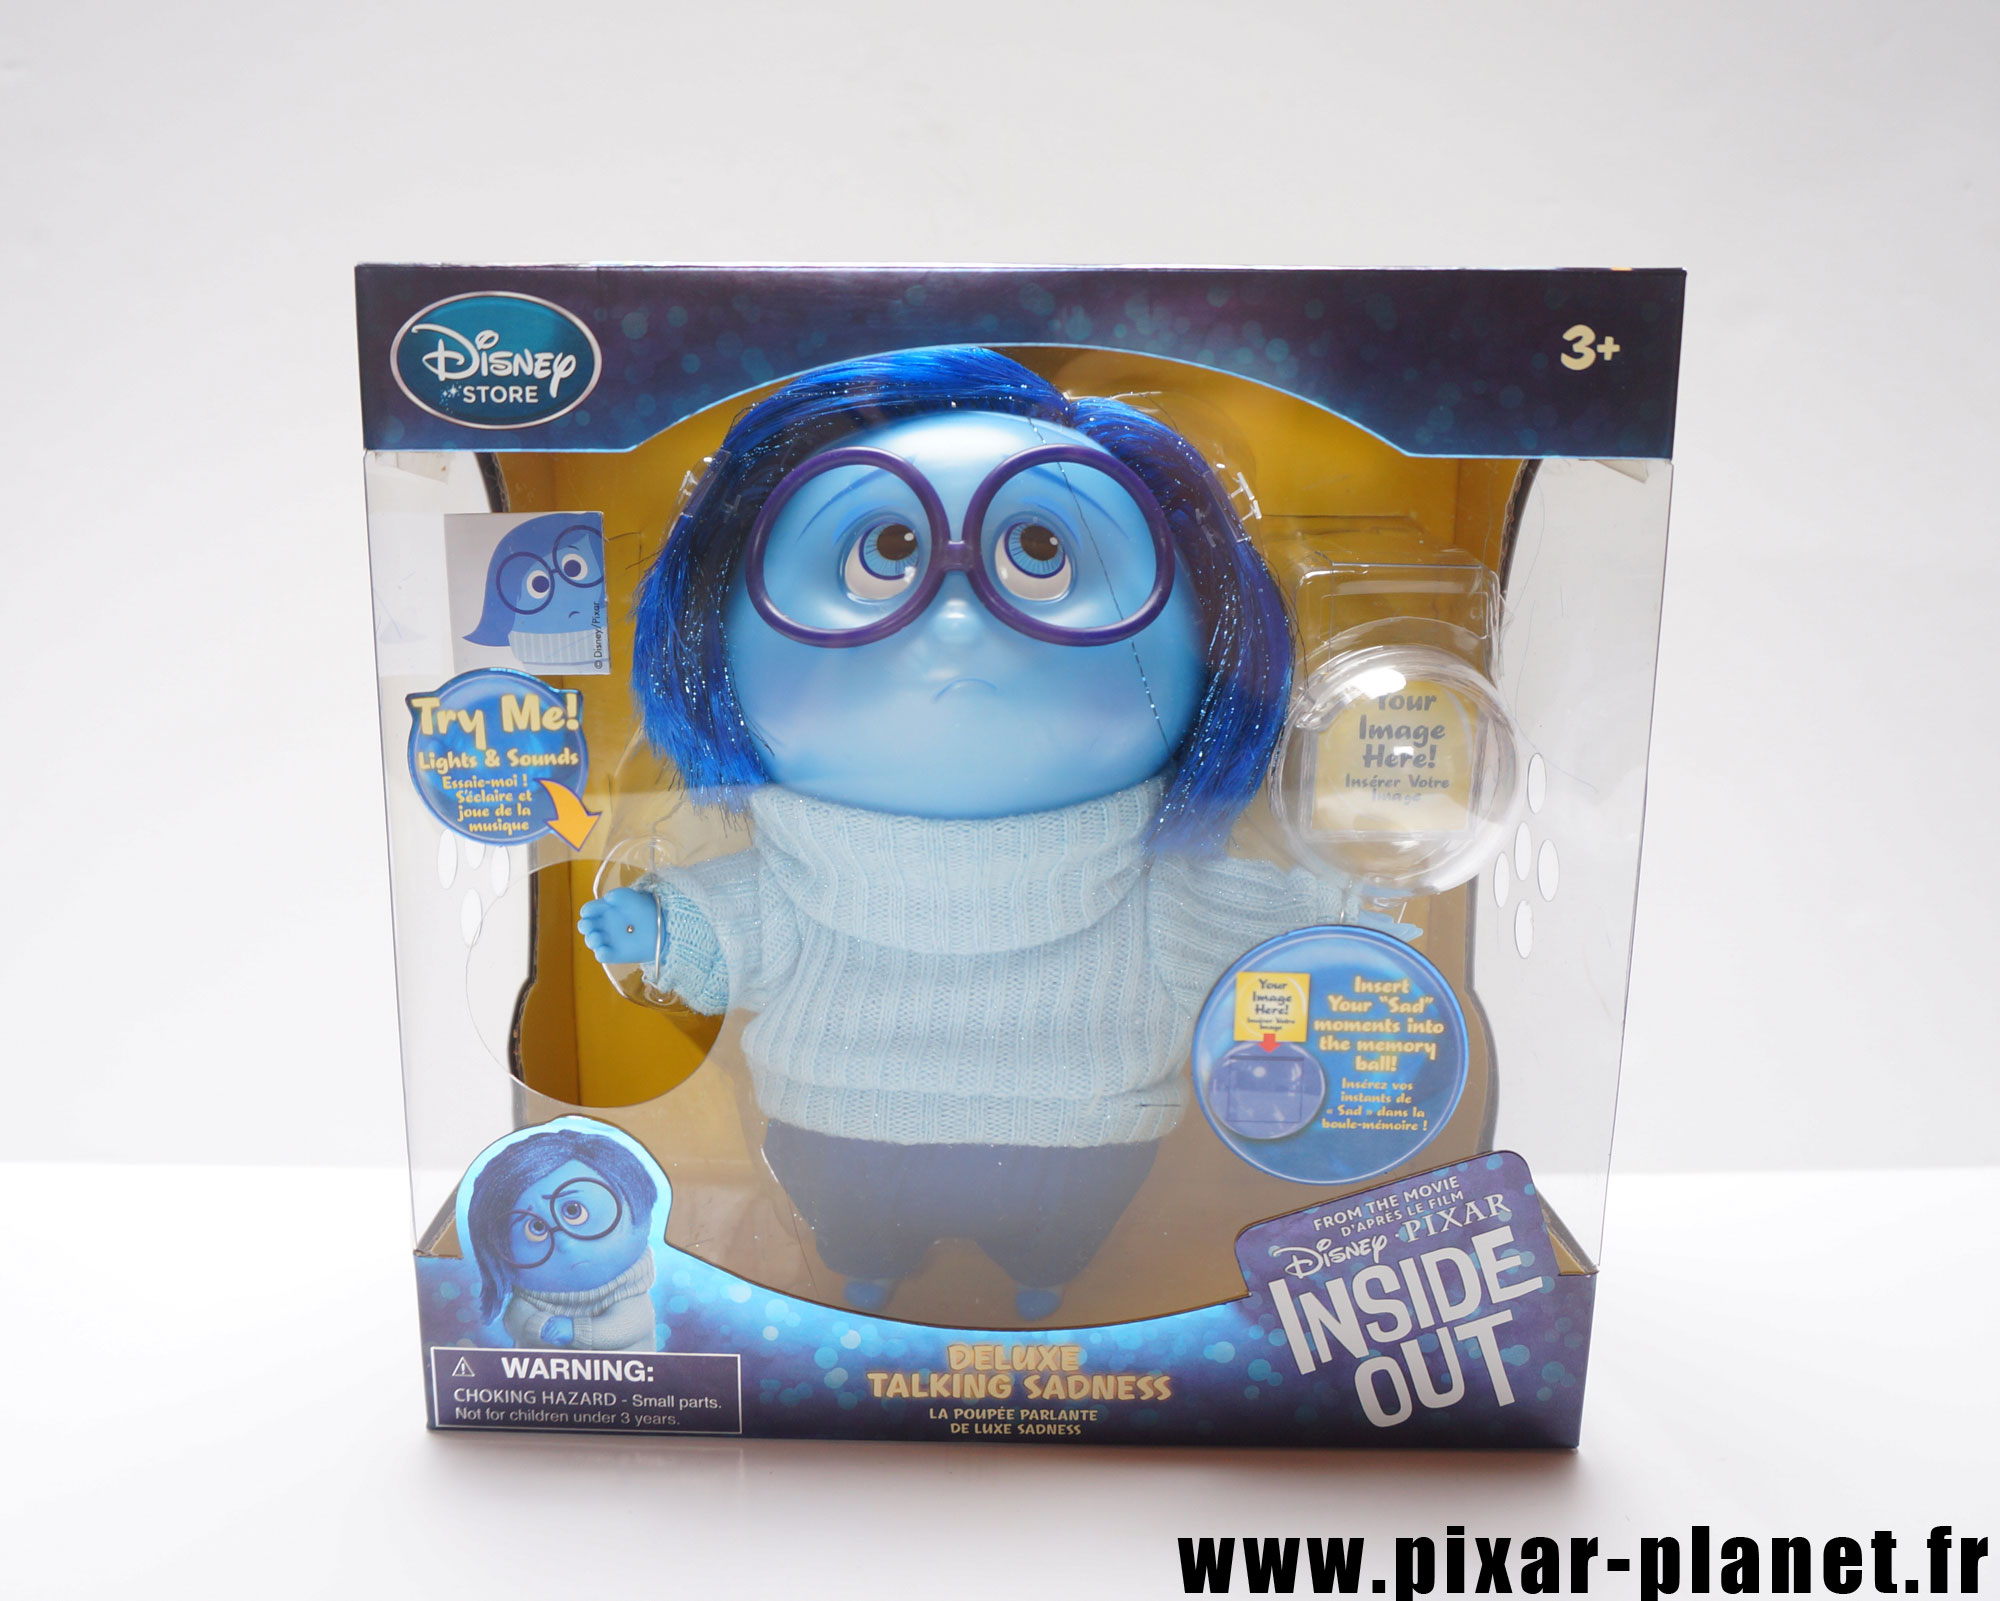 Pixar disney poupée toy vice versa inside out tristesse sadness